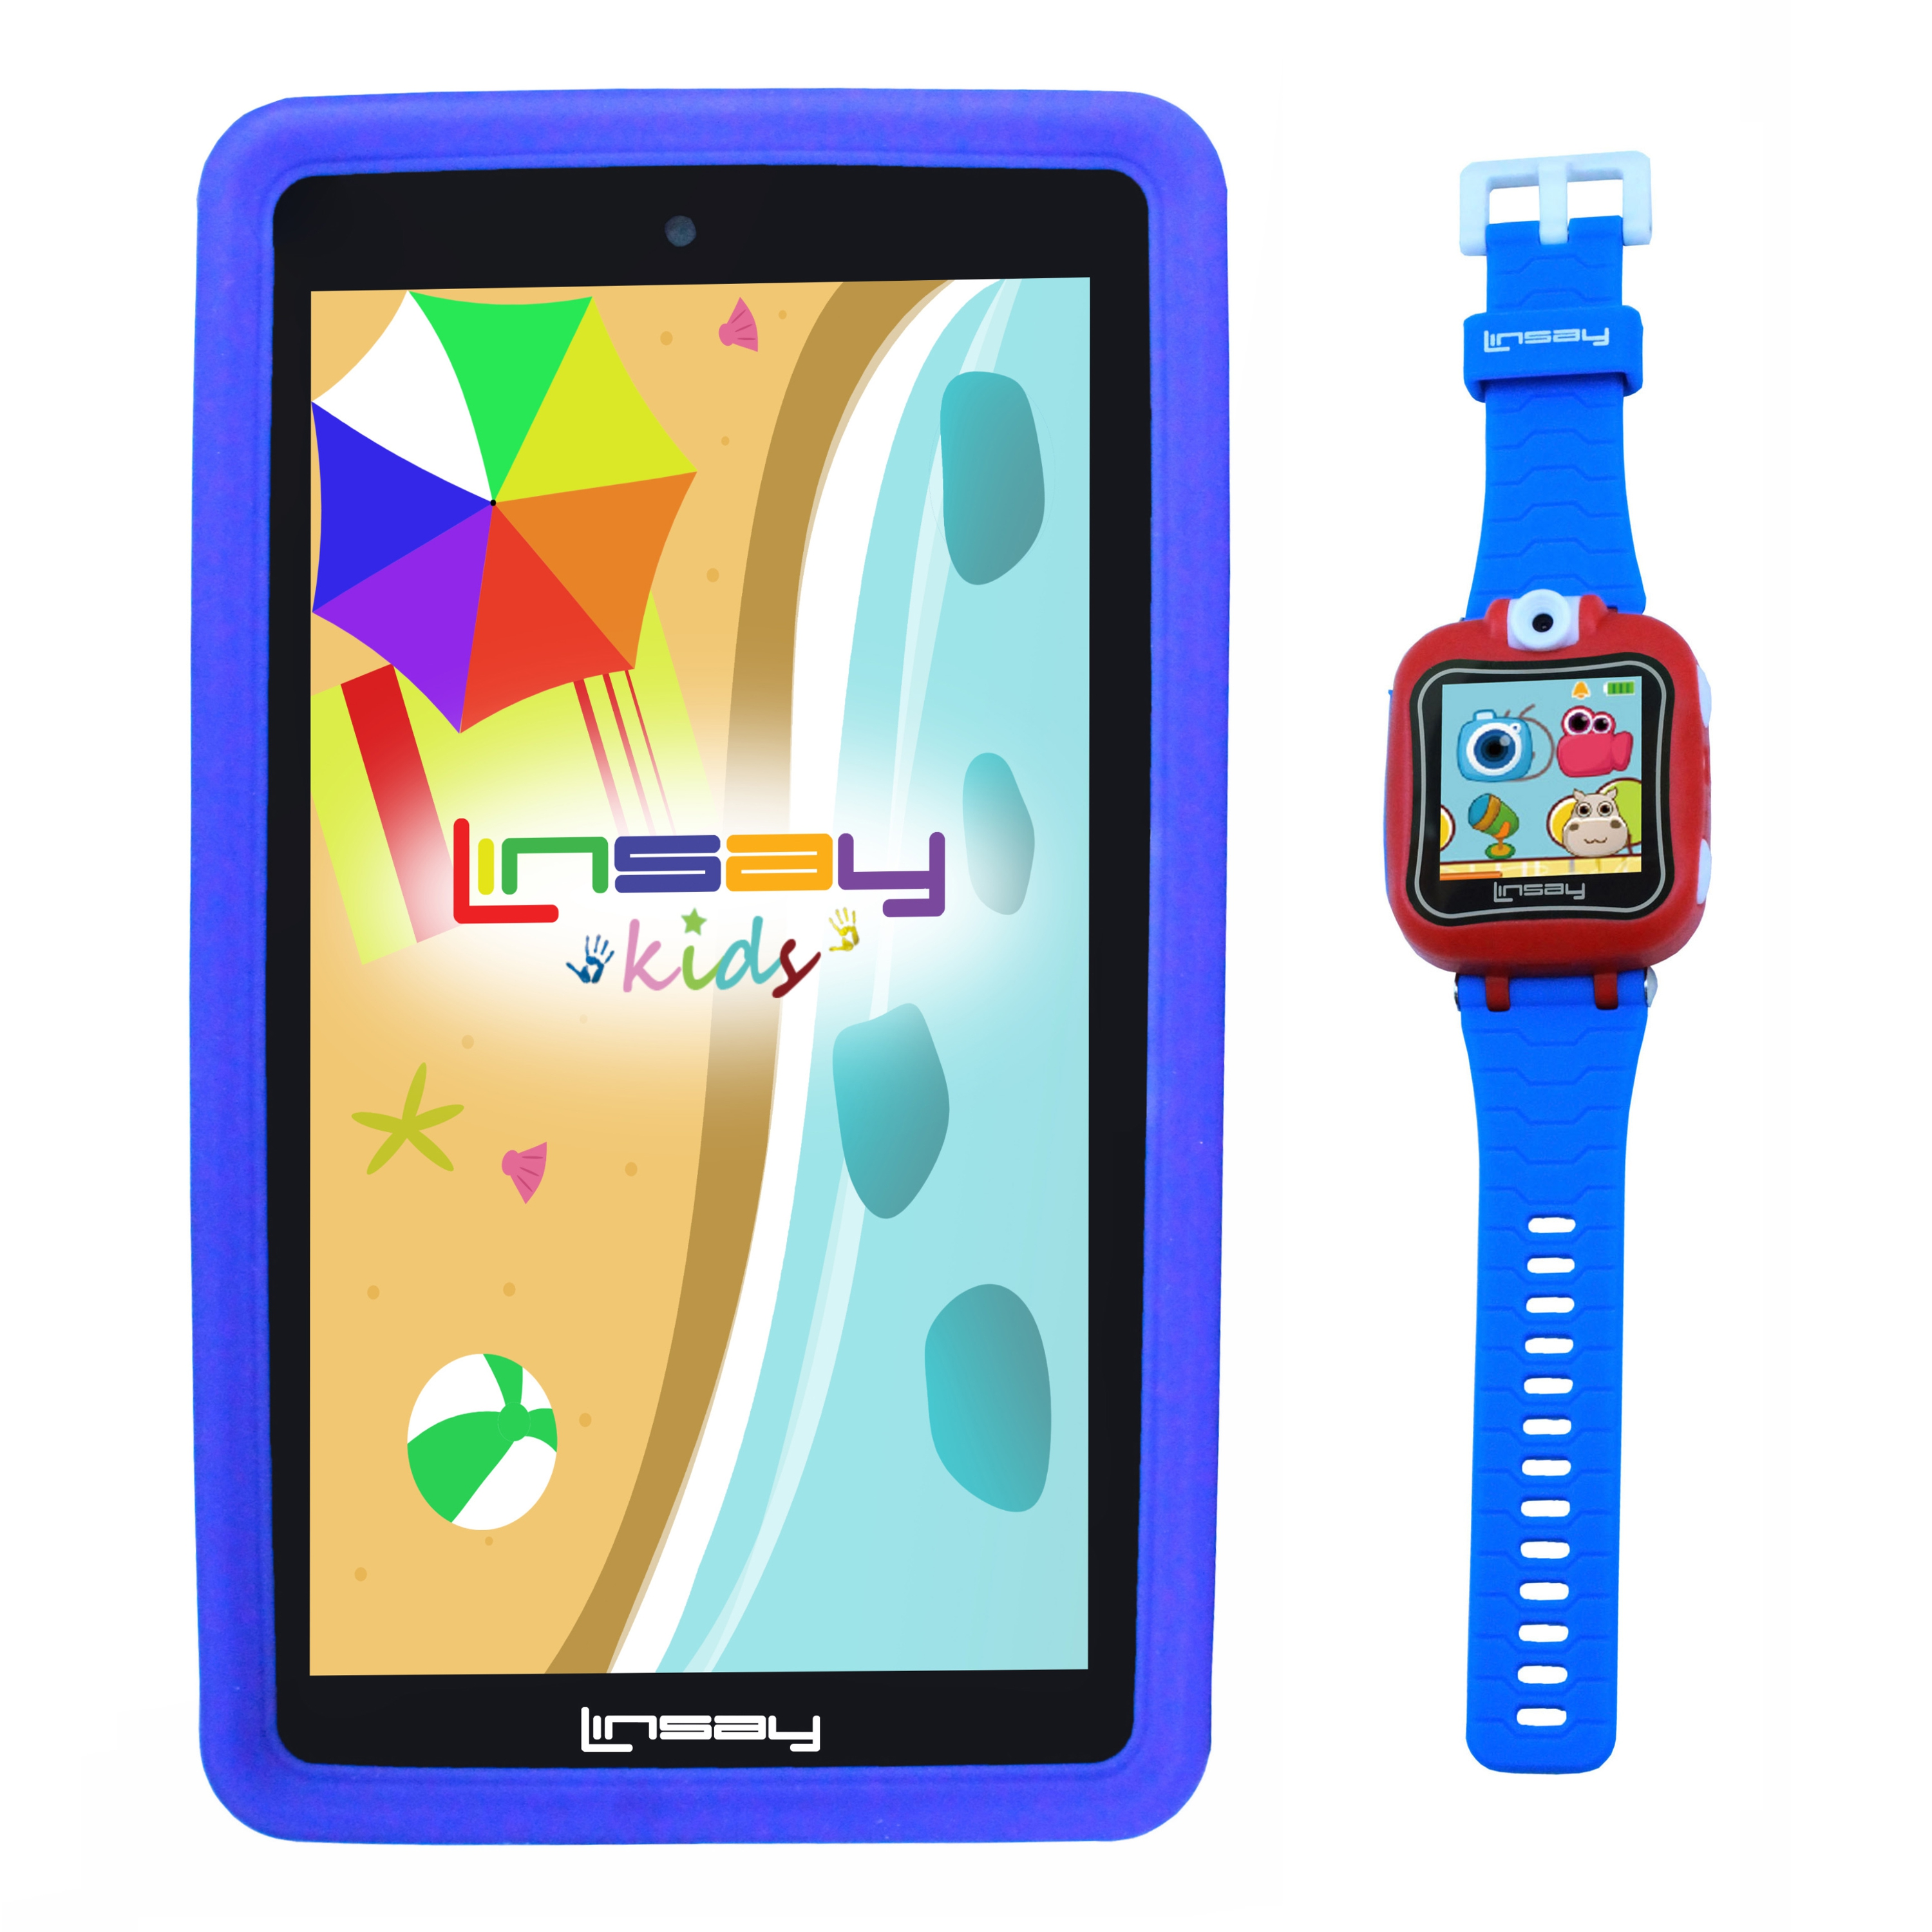 "LINSAY 7"" 1024x600 HD Screen Kids Tablet 8GB with Smart Watch Android 6.0 Operating System"